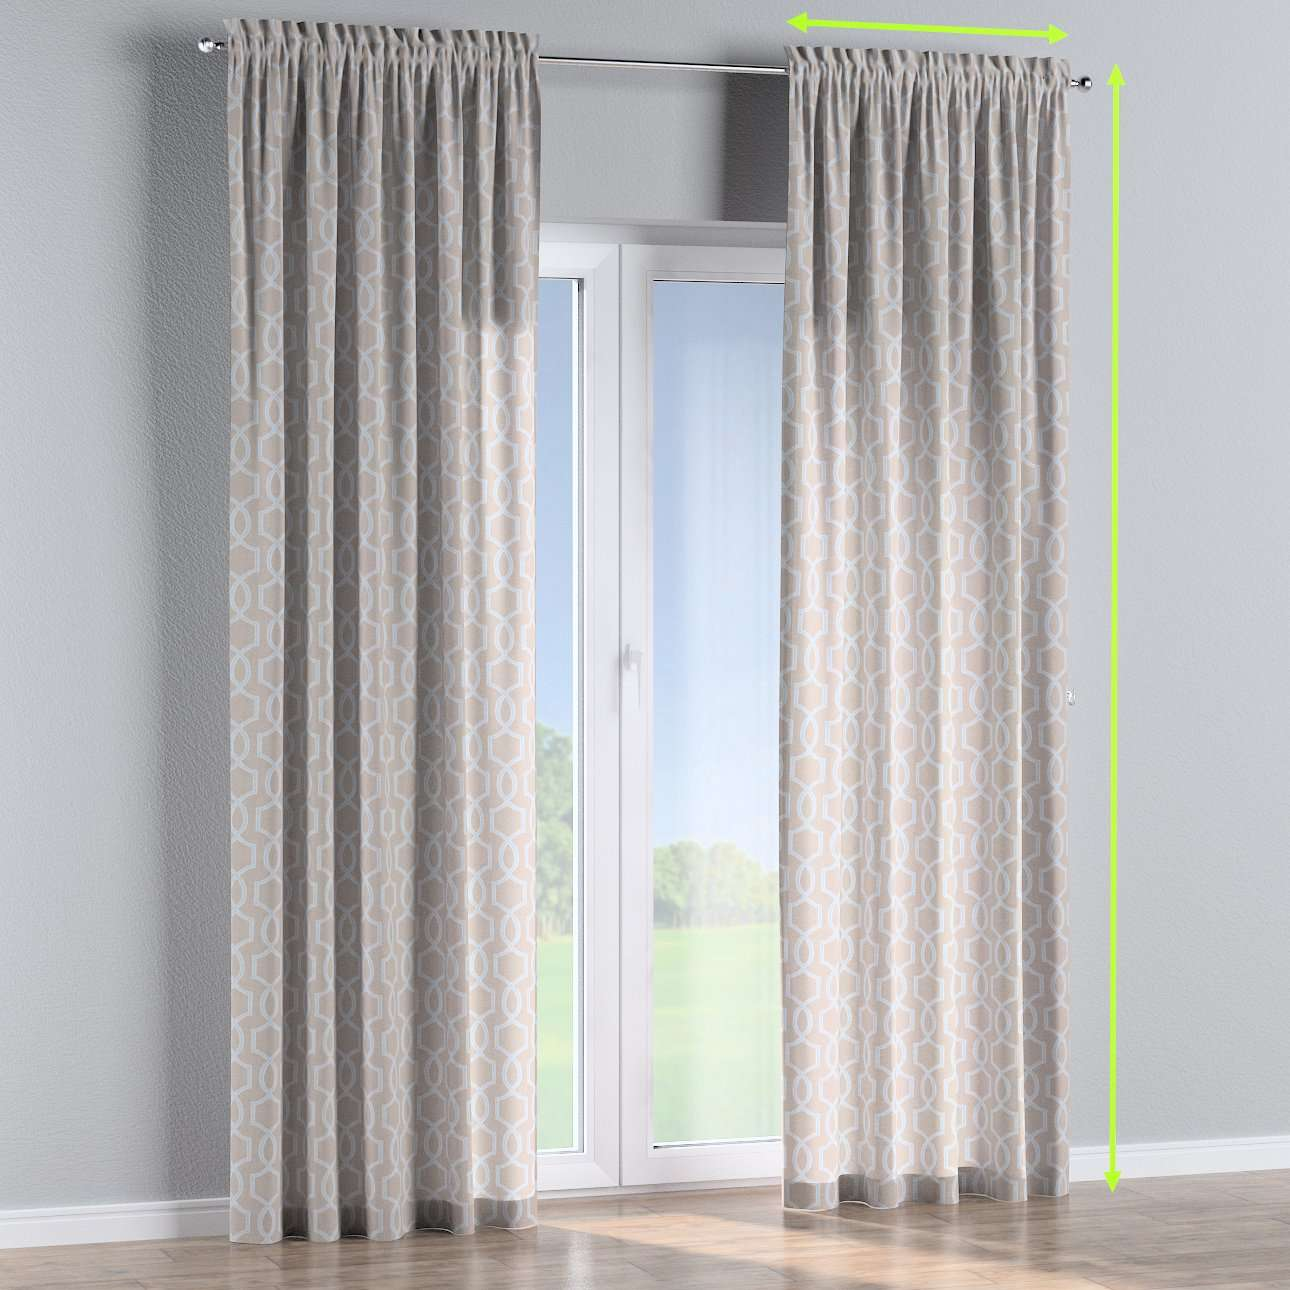 Slot and frill lined curtains in collection Comics/Geometrical, fabric: 141-26